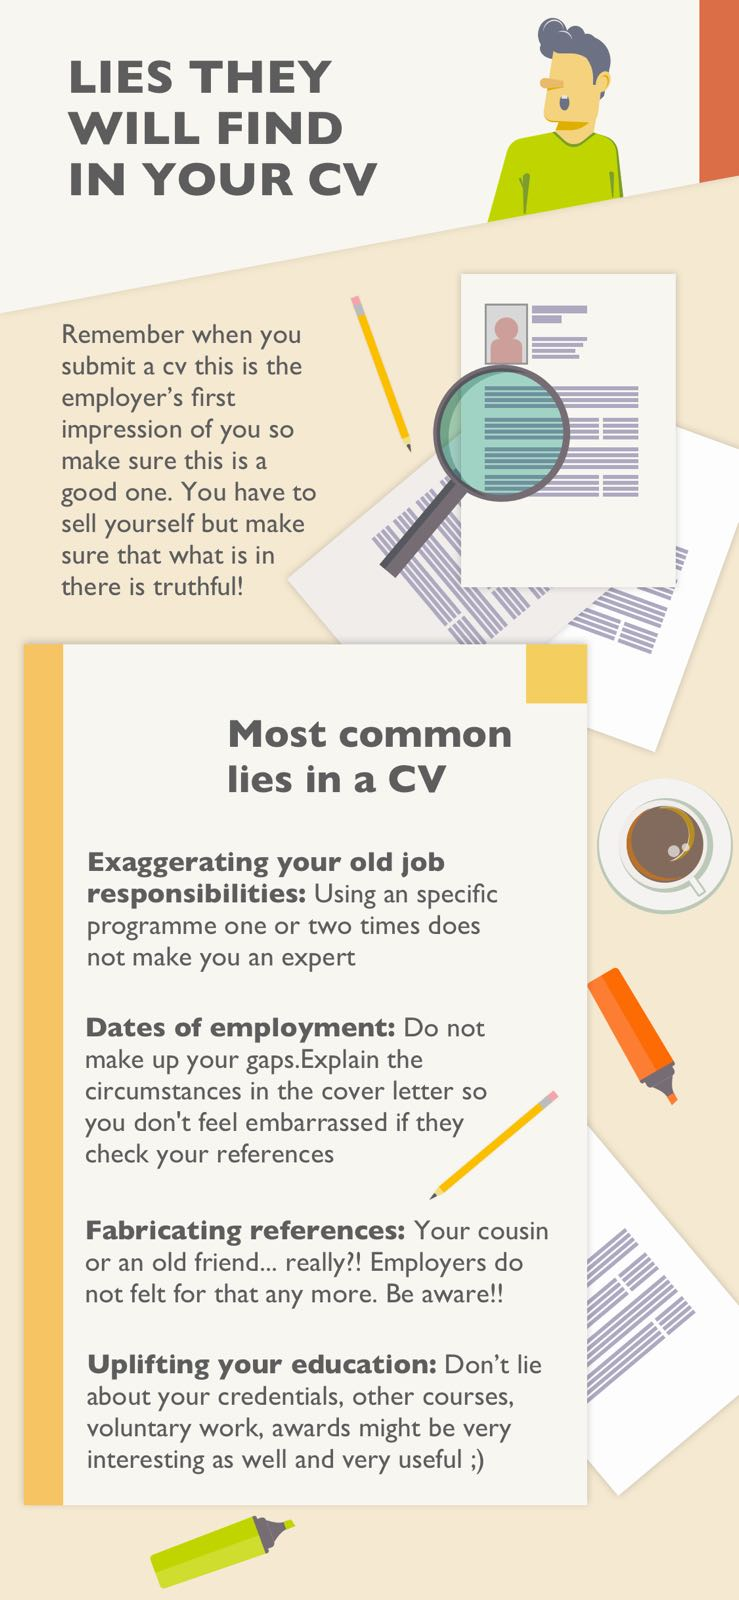 Lies they will find in your CV